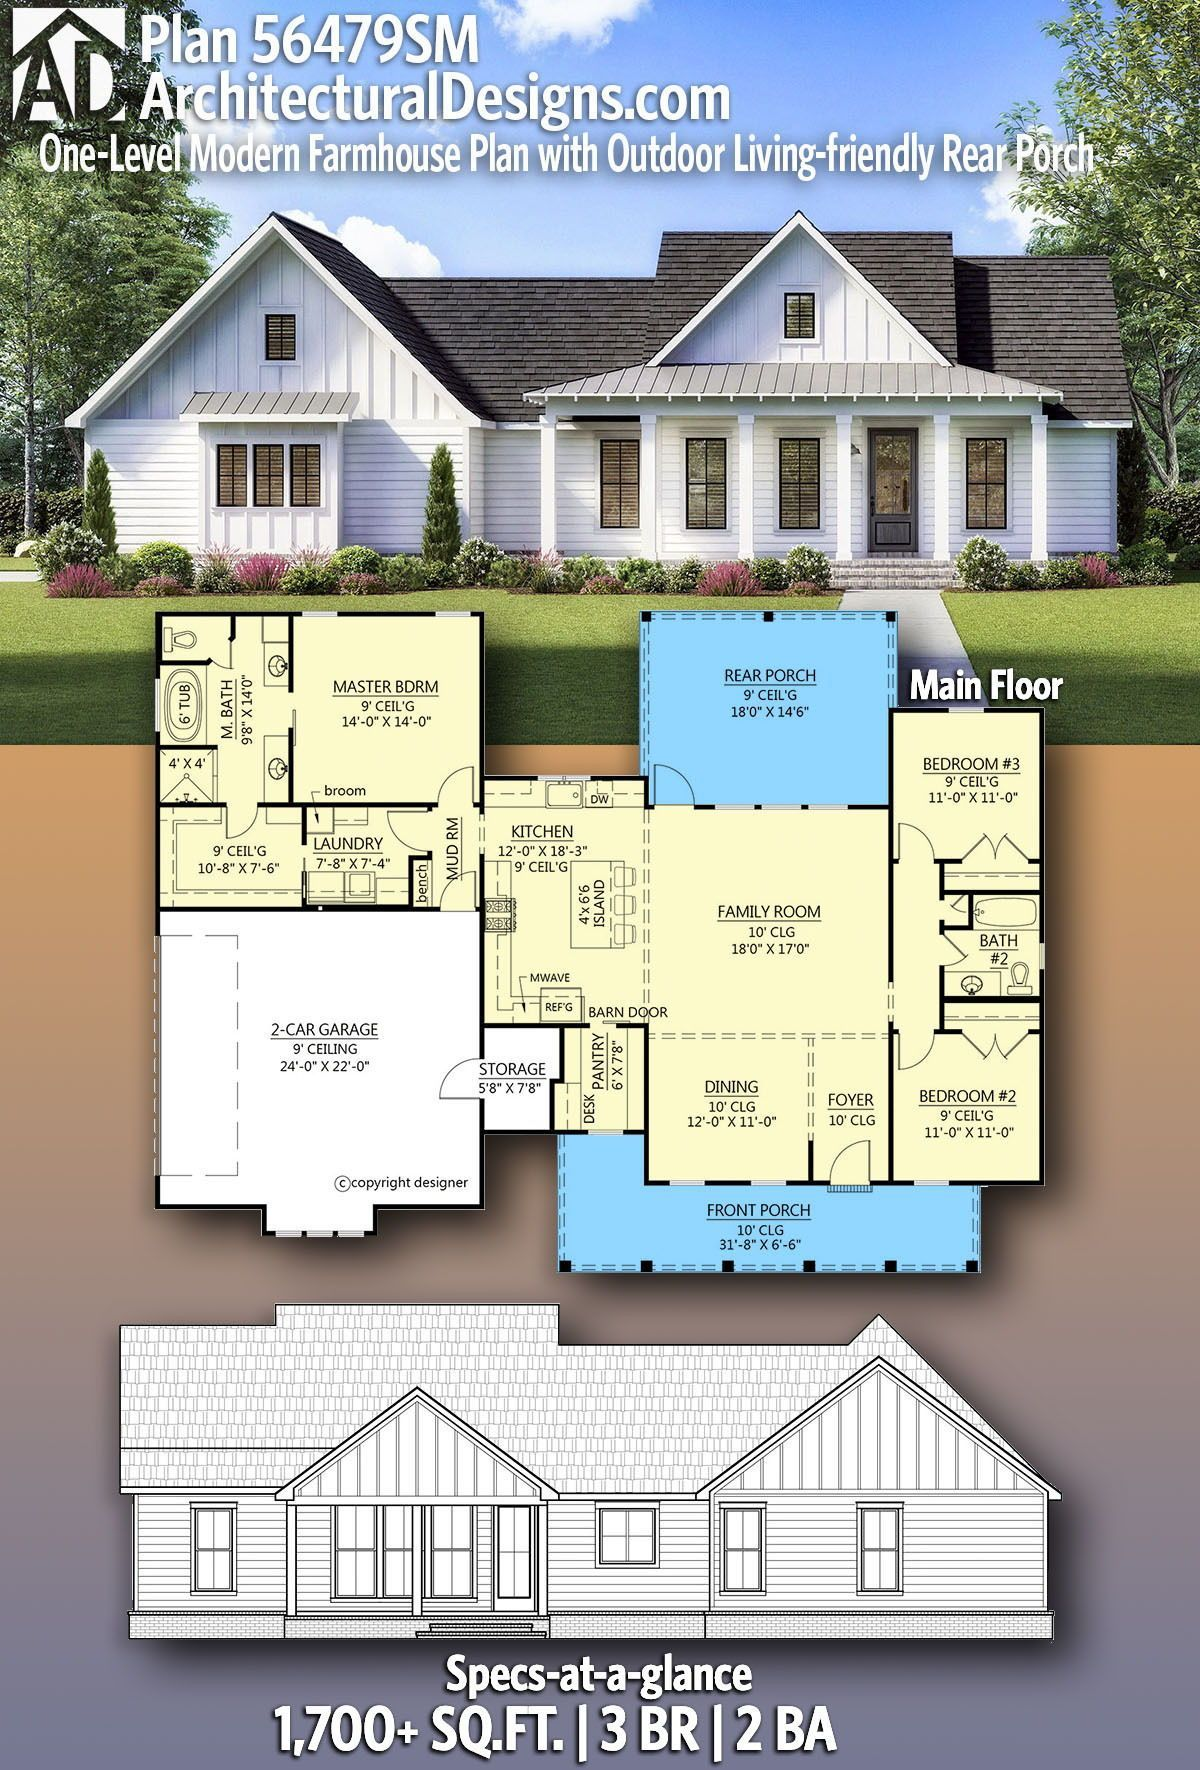 Plan 56479sm One Level Modern Farmhouse Plan With Outdoor Living Friendly Rear Porch Modern Farmhouse Plans Farmhouse Plans Lake House Plans